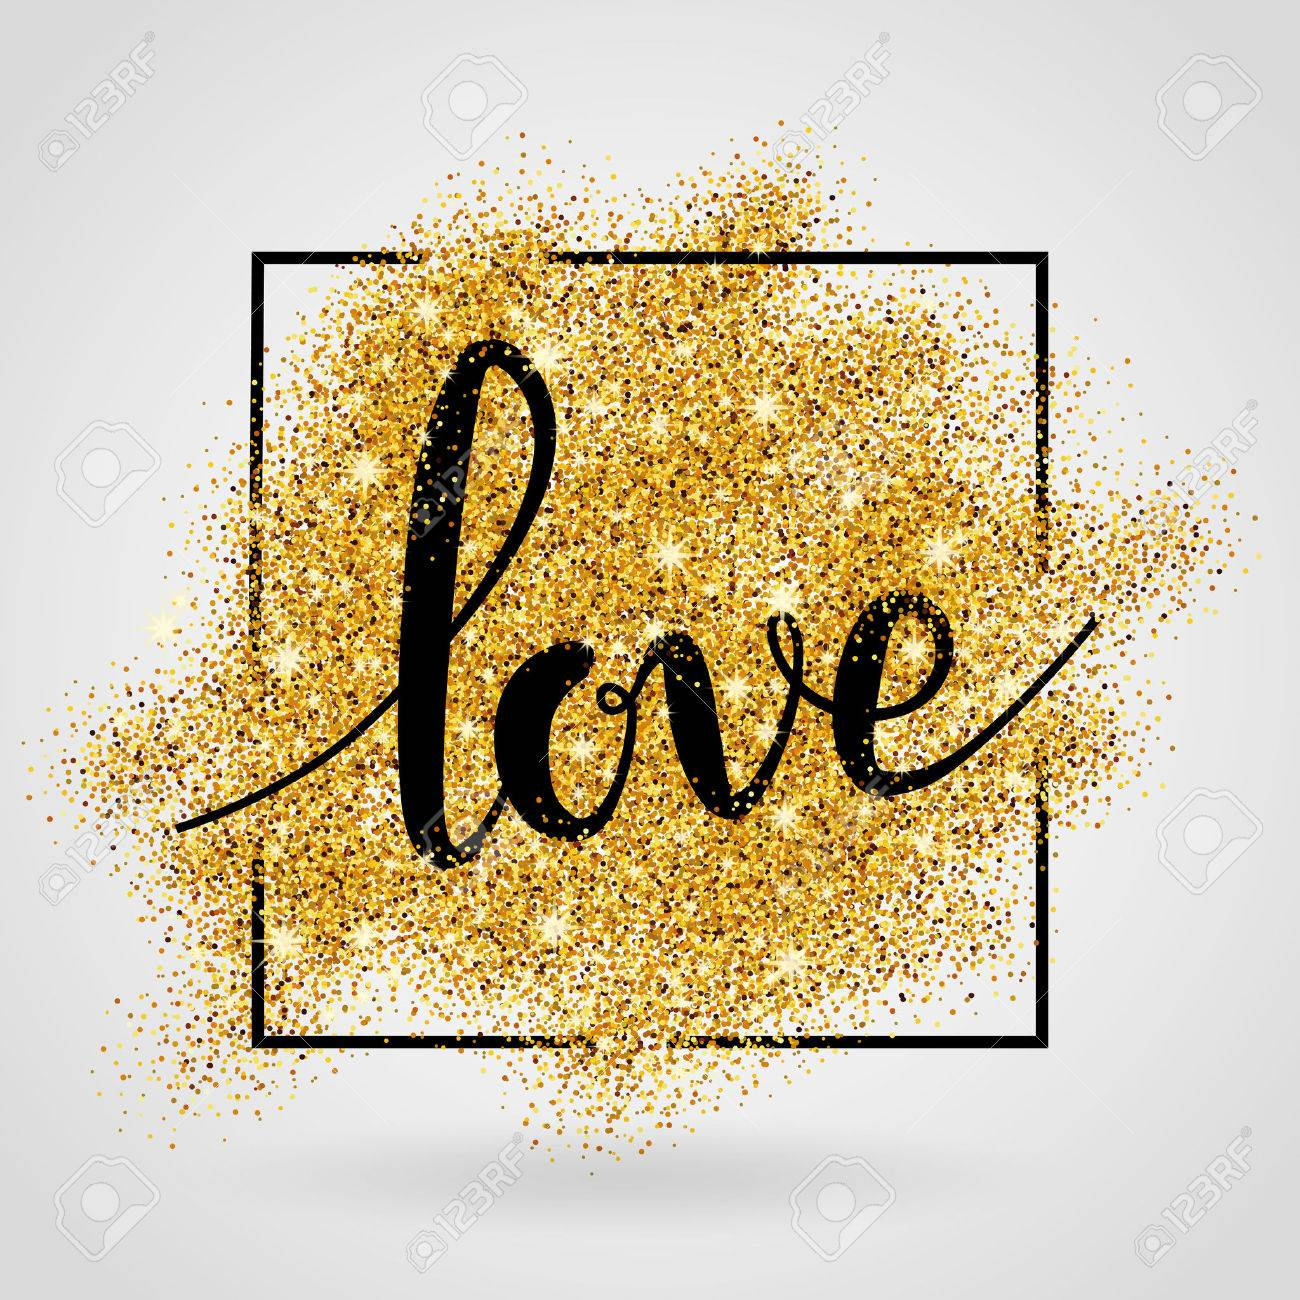 Love gold background. - 55171841